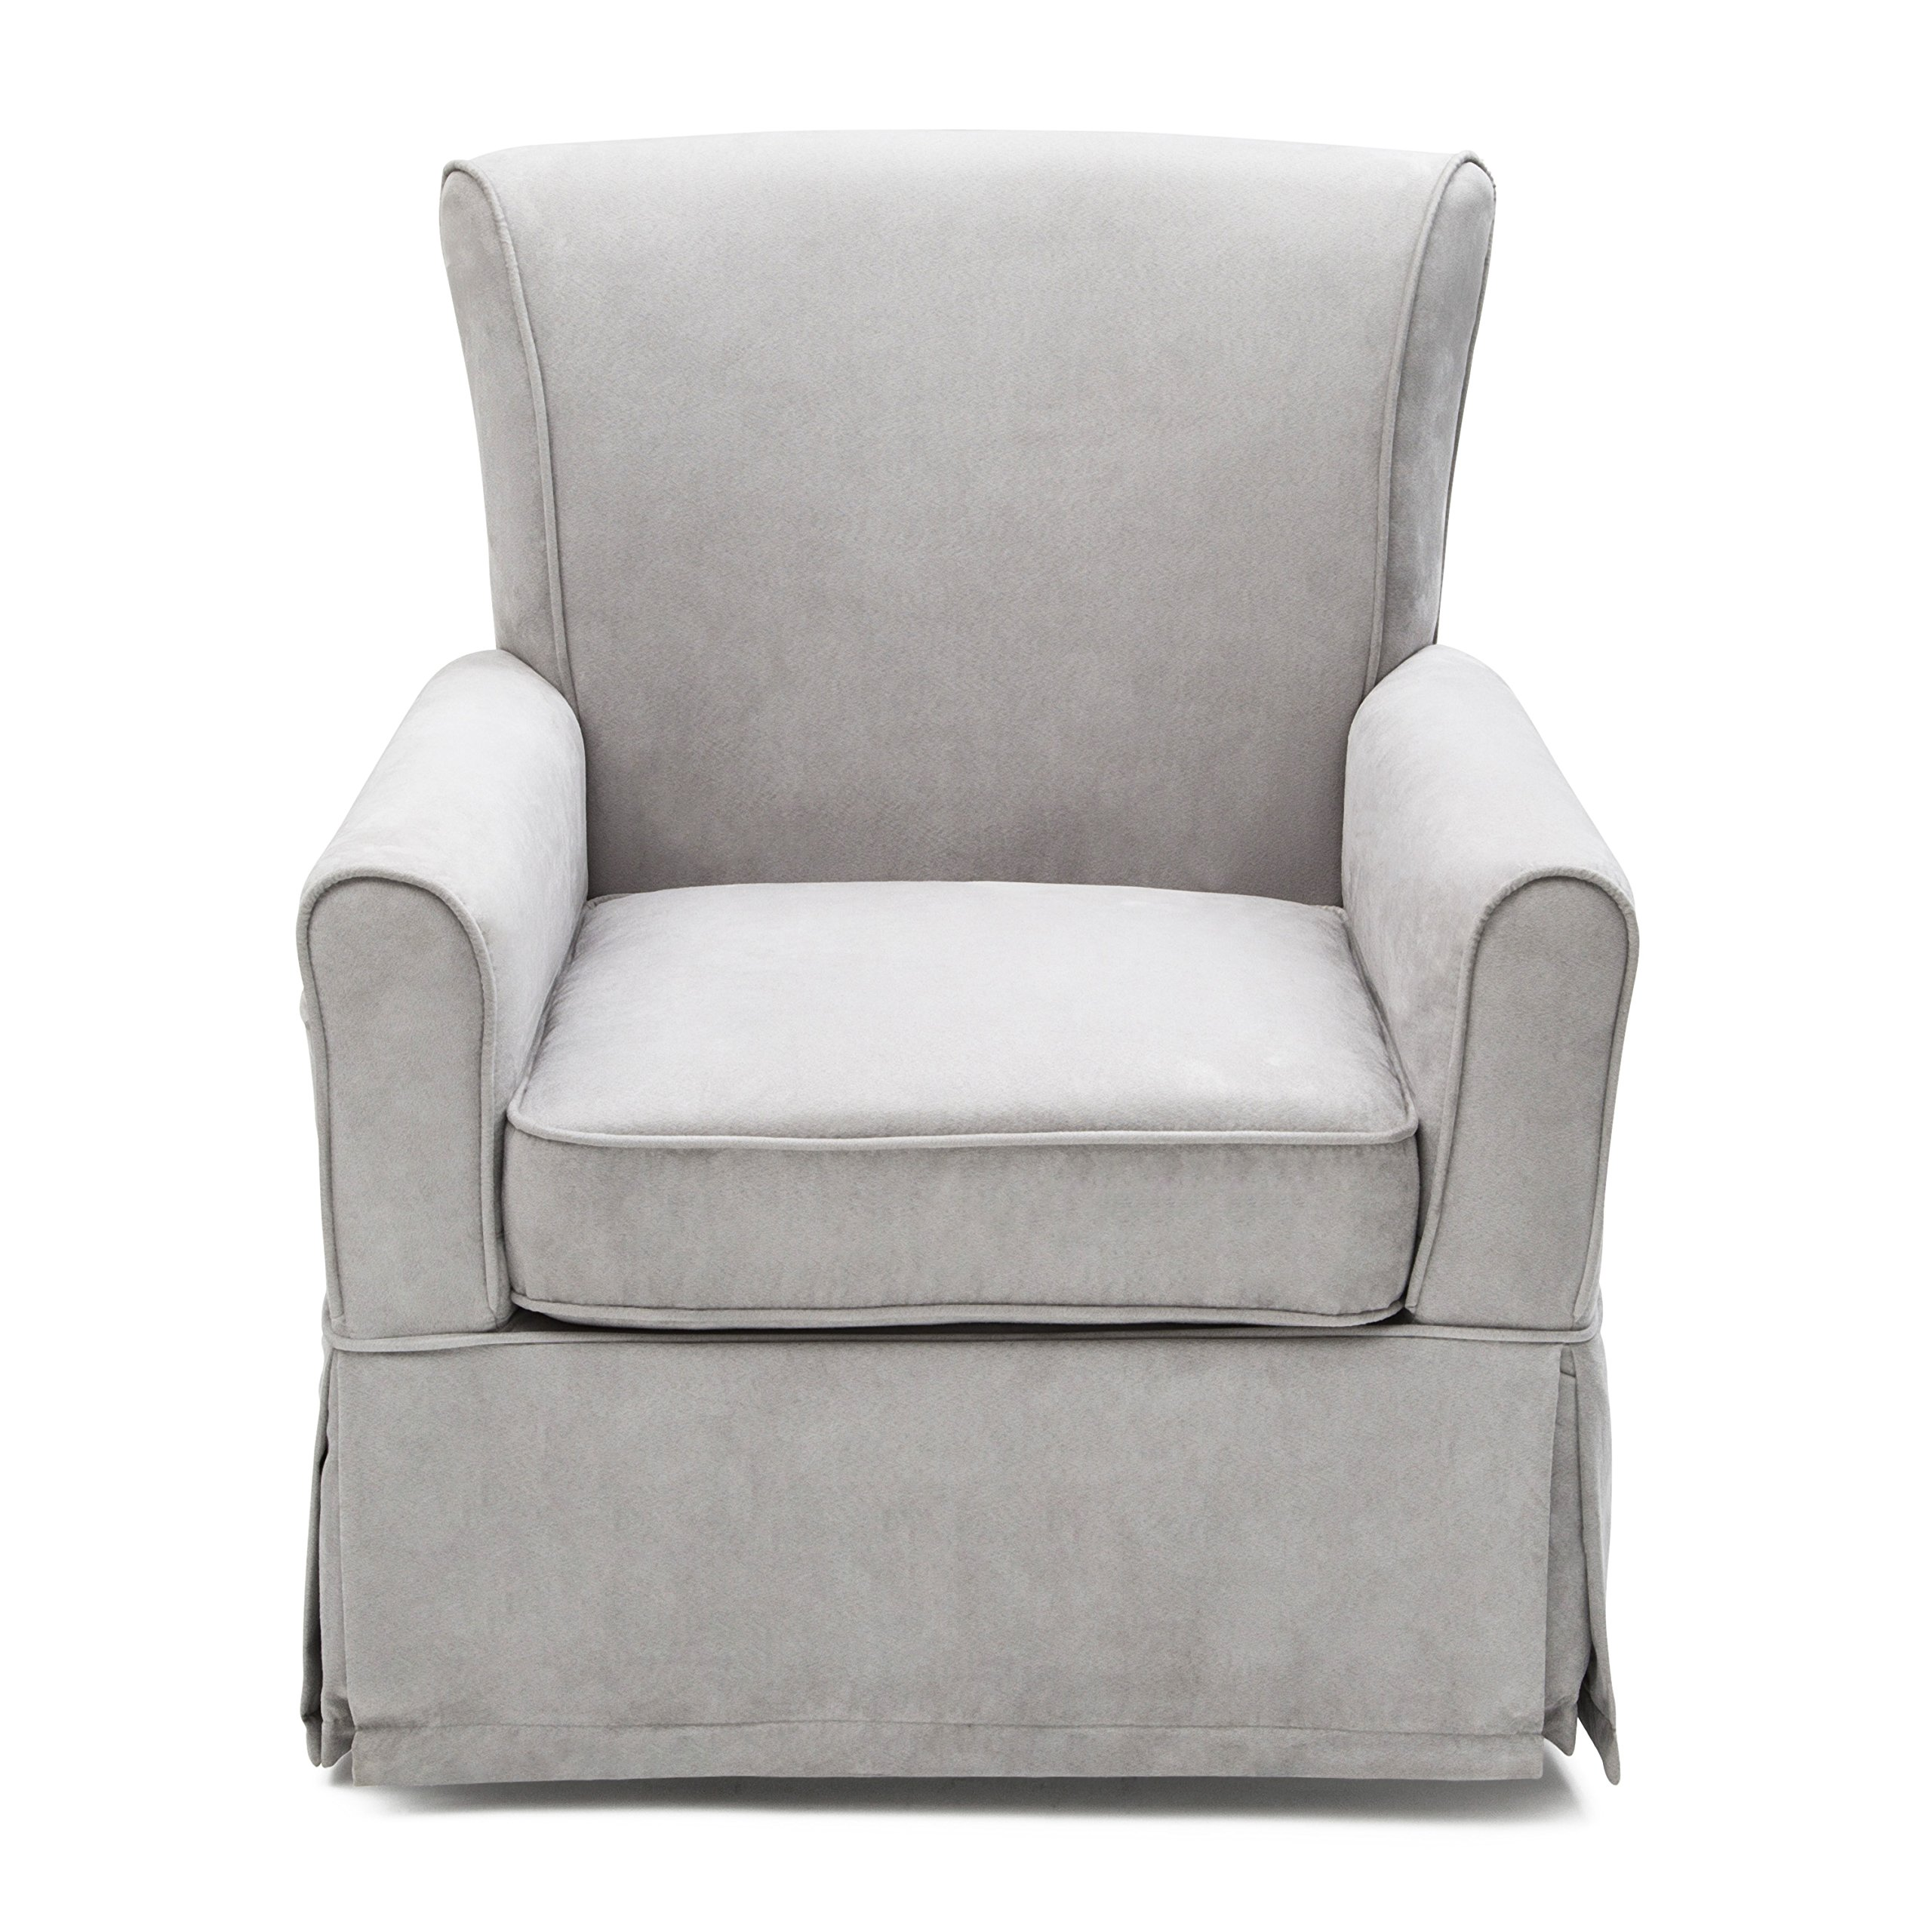 Delta Furniture Benbridge Upholstered Glider Swivel Rocker Chair, Dove Grey by Delta Furniture (Image #2)